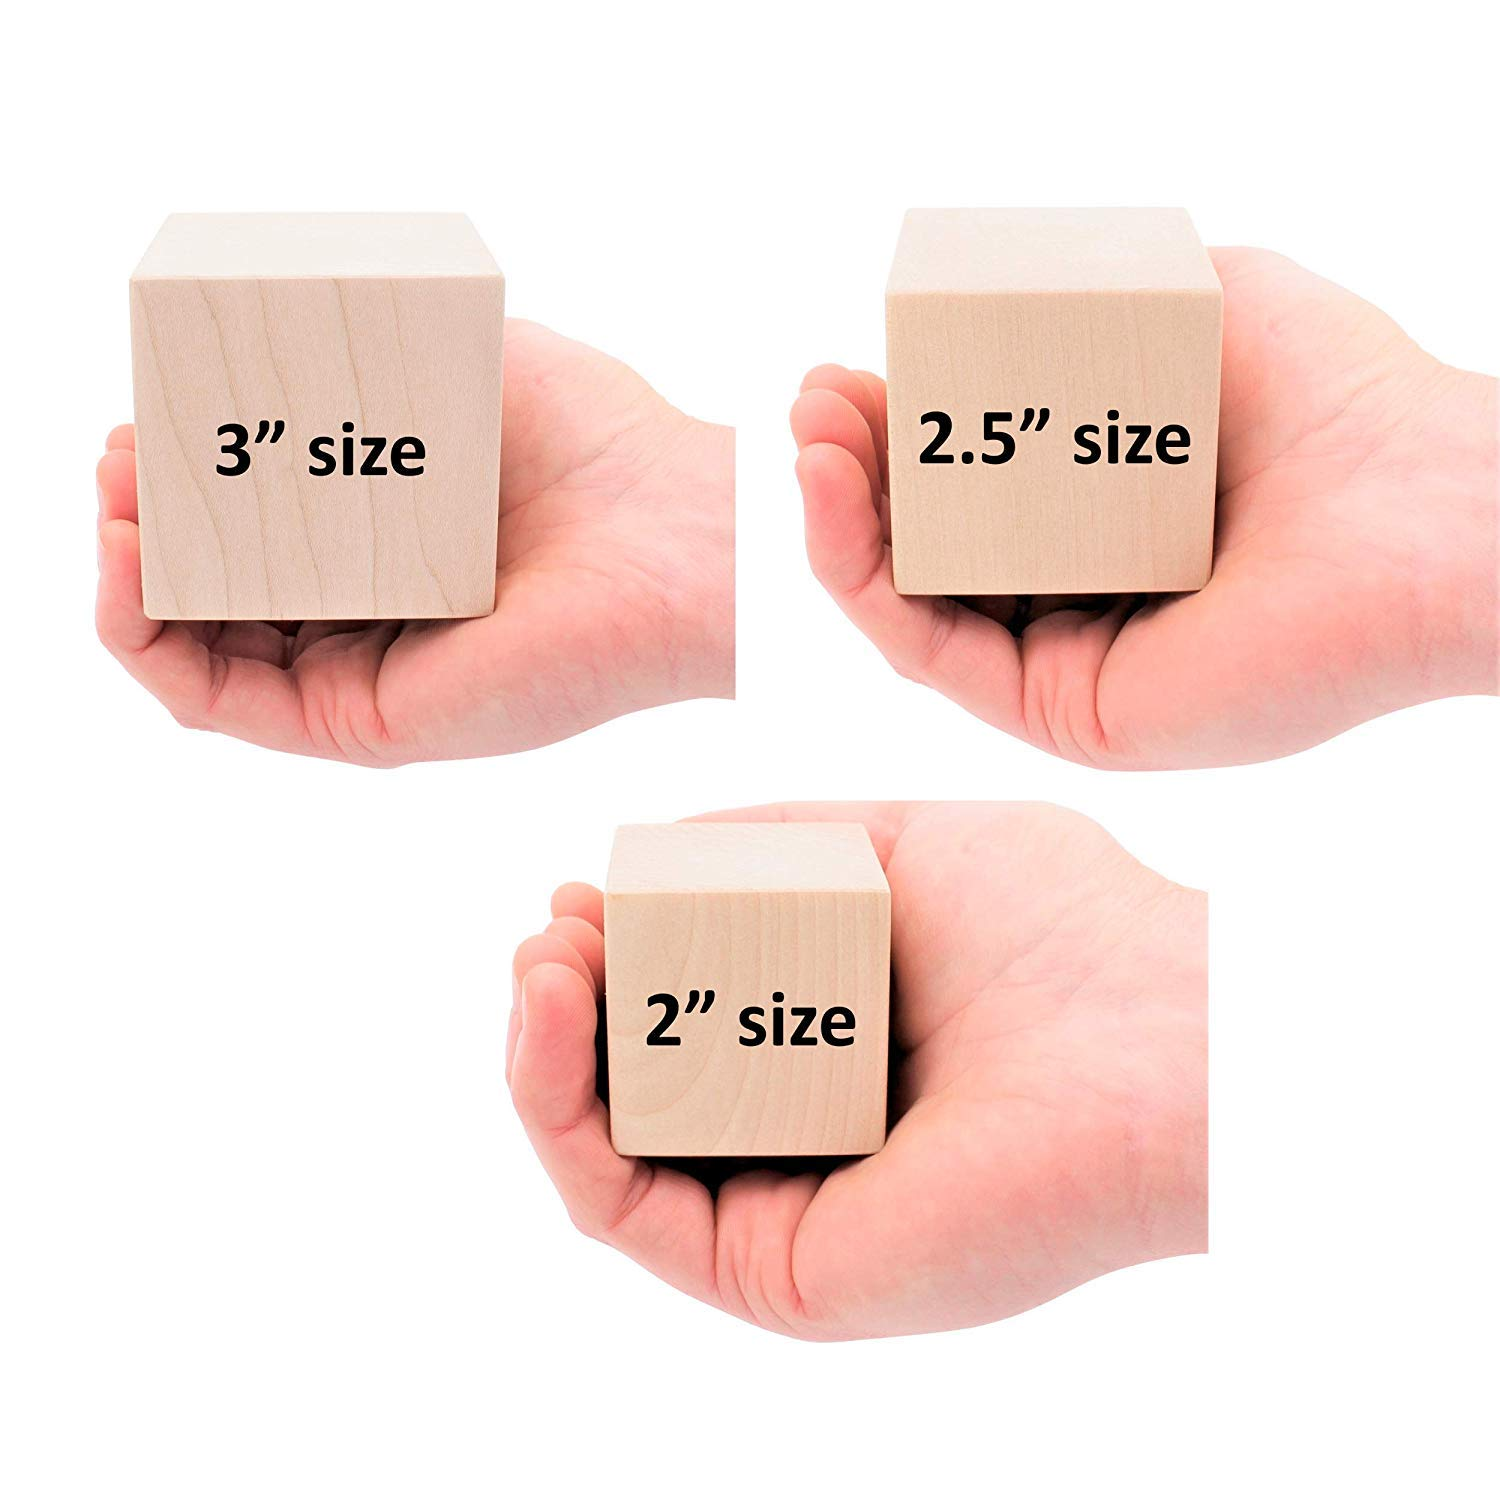 Small gift set wooden cubes for birth for girls wooden cubes baby gift dates of birth engraved wooden blocks baby photo shoot